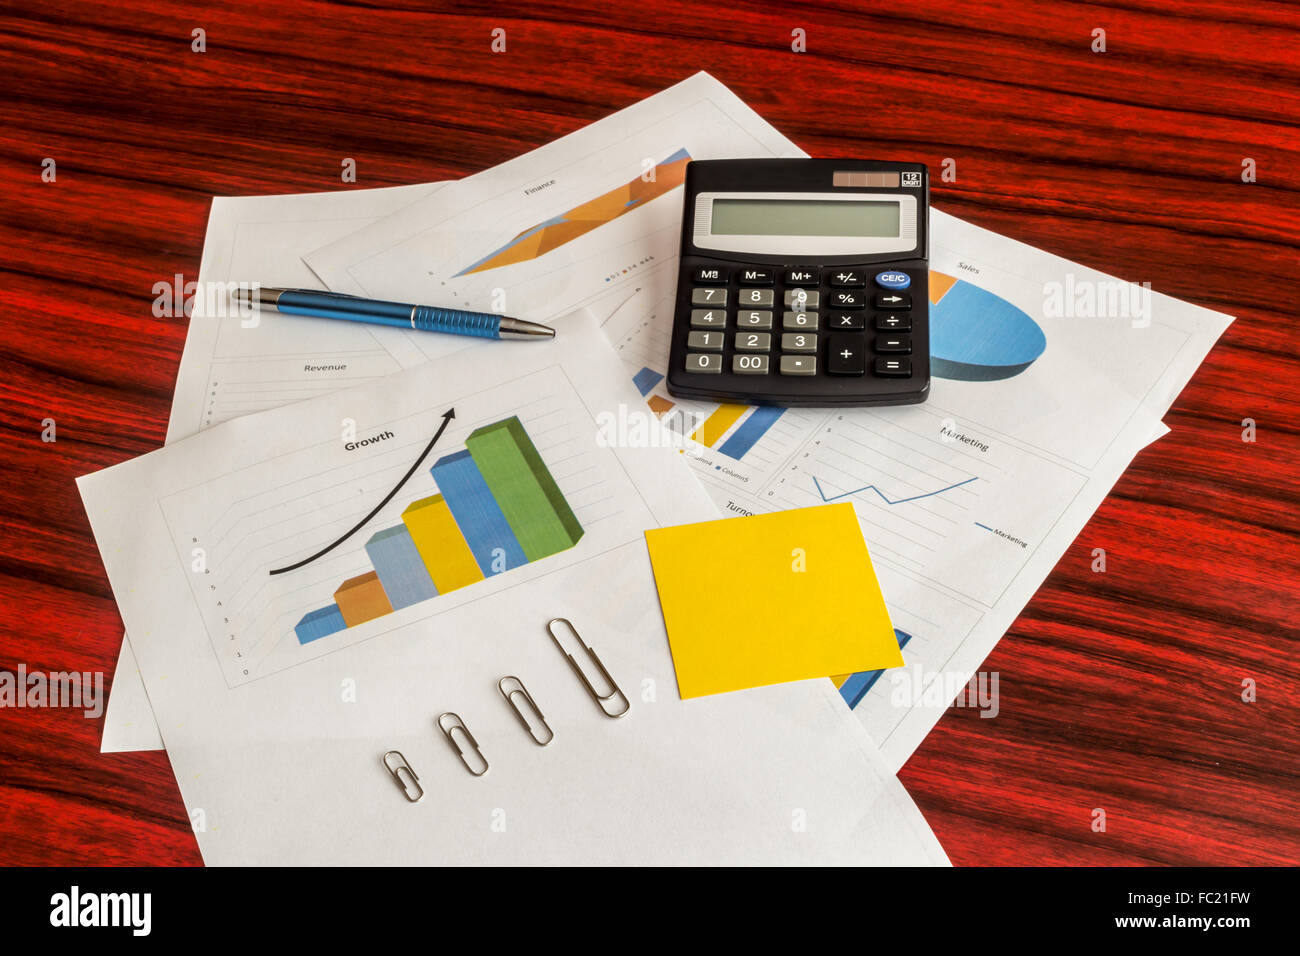 Bunch of printed charts and graphs with calculator, paper clips, yellow note and pen on them - Stock Image